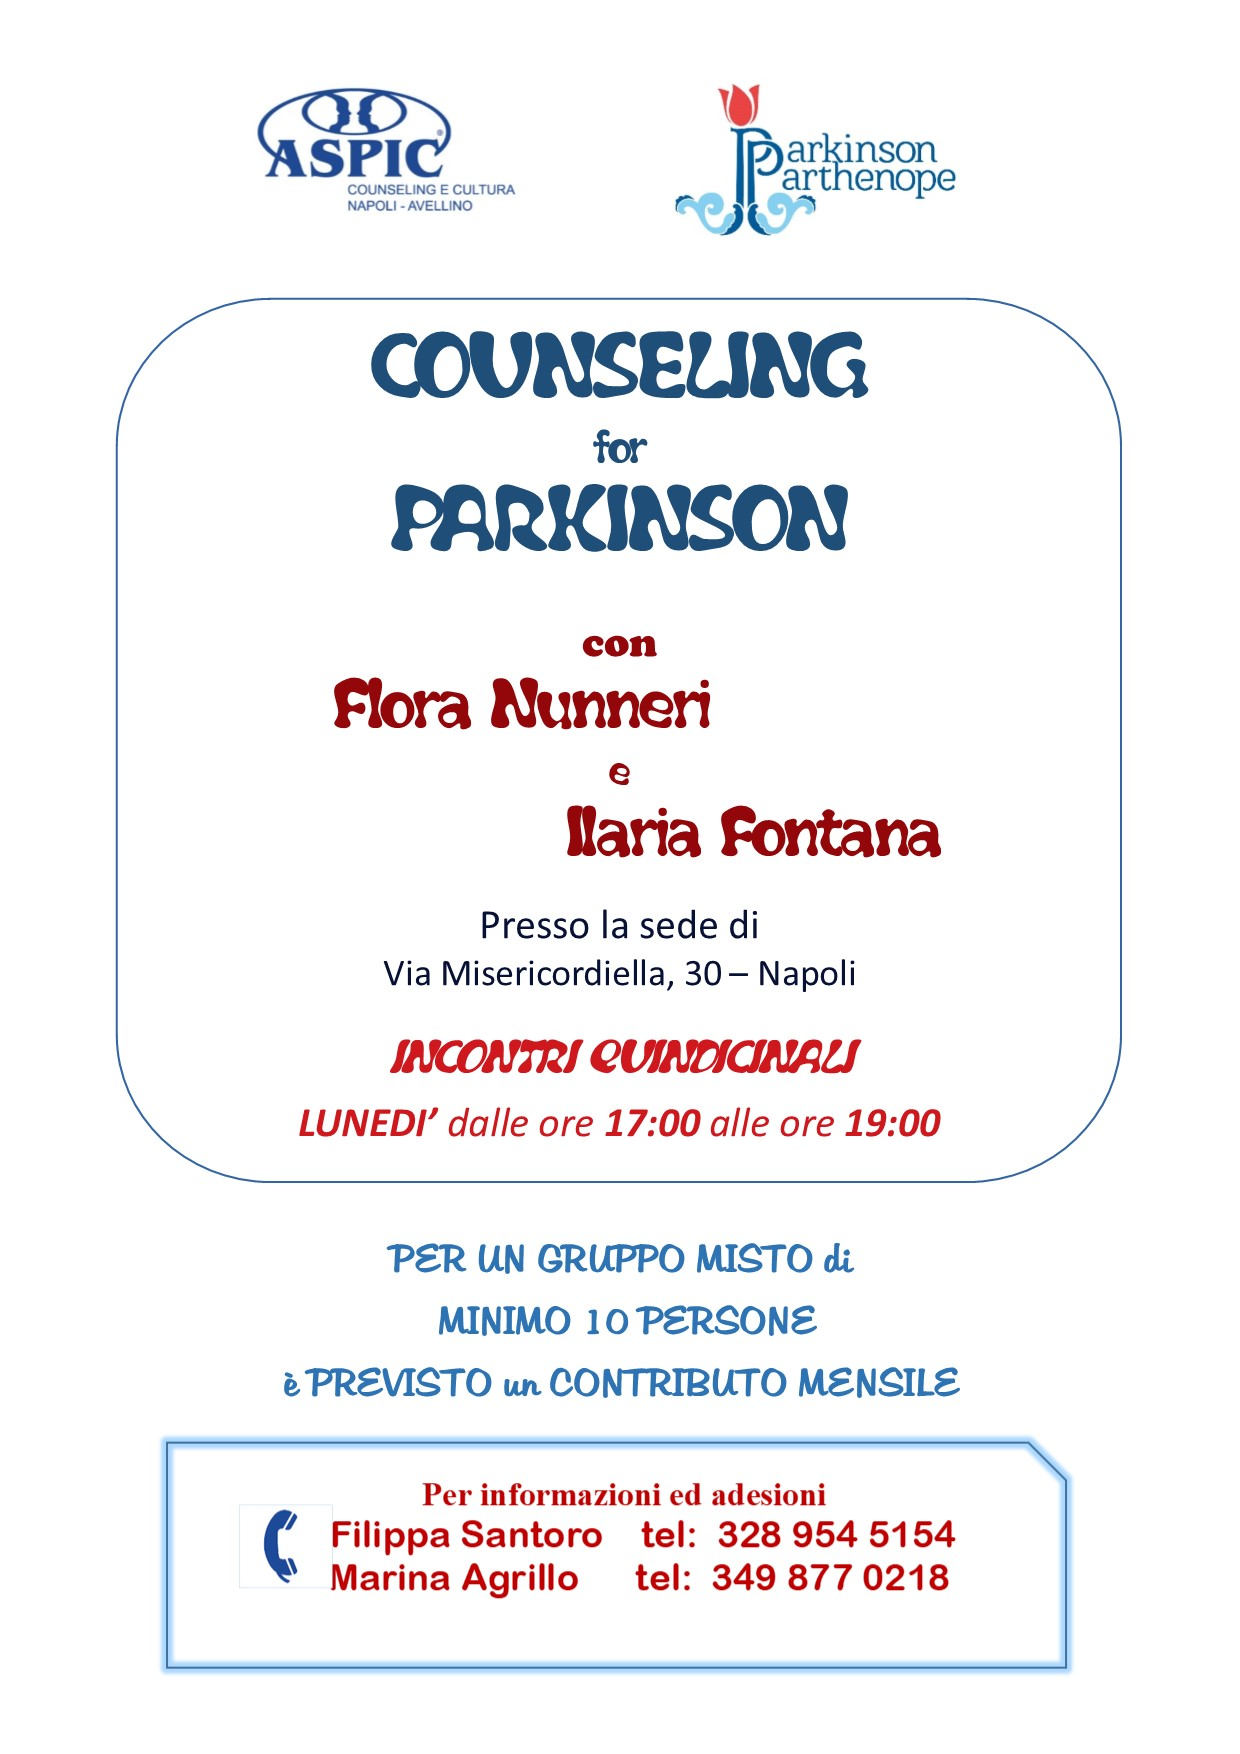 COUNSELING for PARKINSON